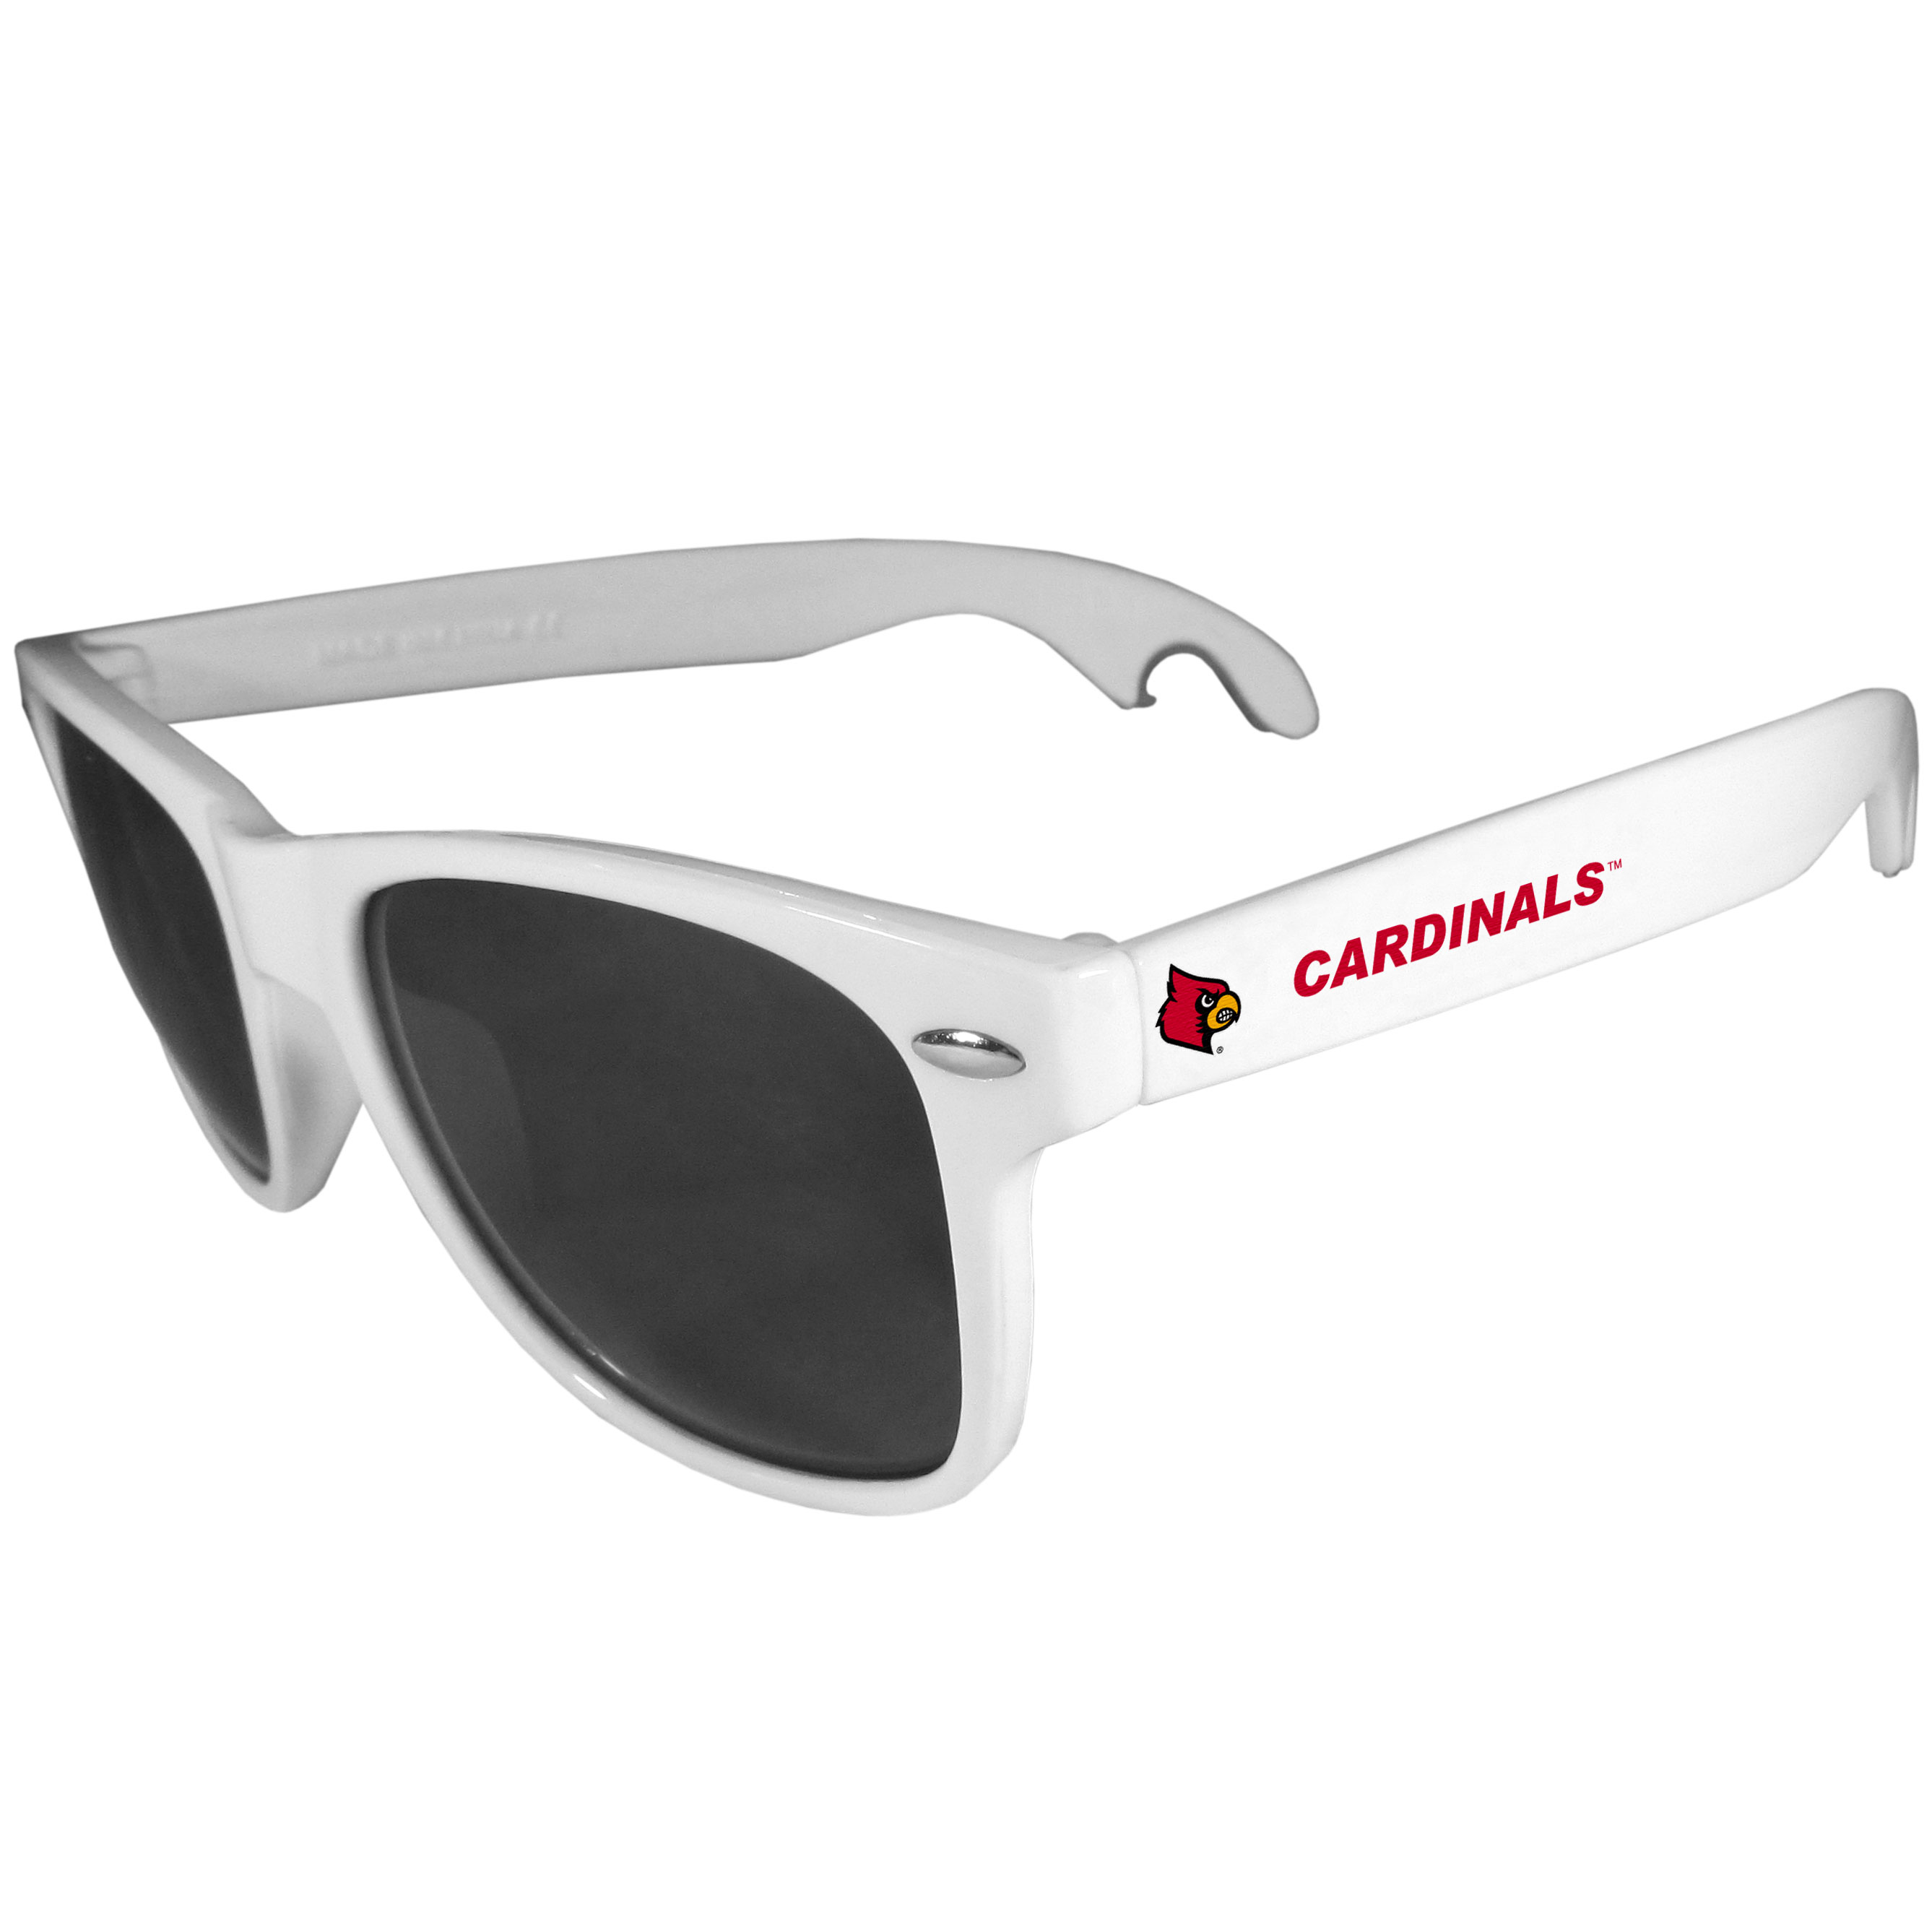 Louisville Cardinals Beachfarer Bottle Opener Sunglasses, White - Seriously, these sunglasses open bottles! Keep the party going with these amazing Louisville Cardinals bottle opener sunglasses. The stylish retro frames feature team designs on the arms and functional bottle openers on the end of the arms. Whether you are at the beach or having a backyard BBQ on game day, these shades will keep your eyes protected with 100% UVA/UVB protection and keep you hydrated with the handy bottle opener arms.